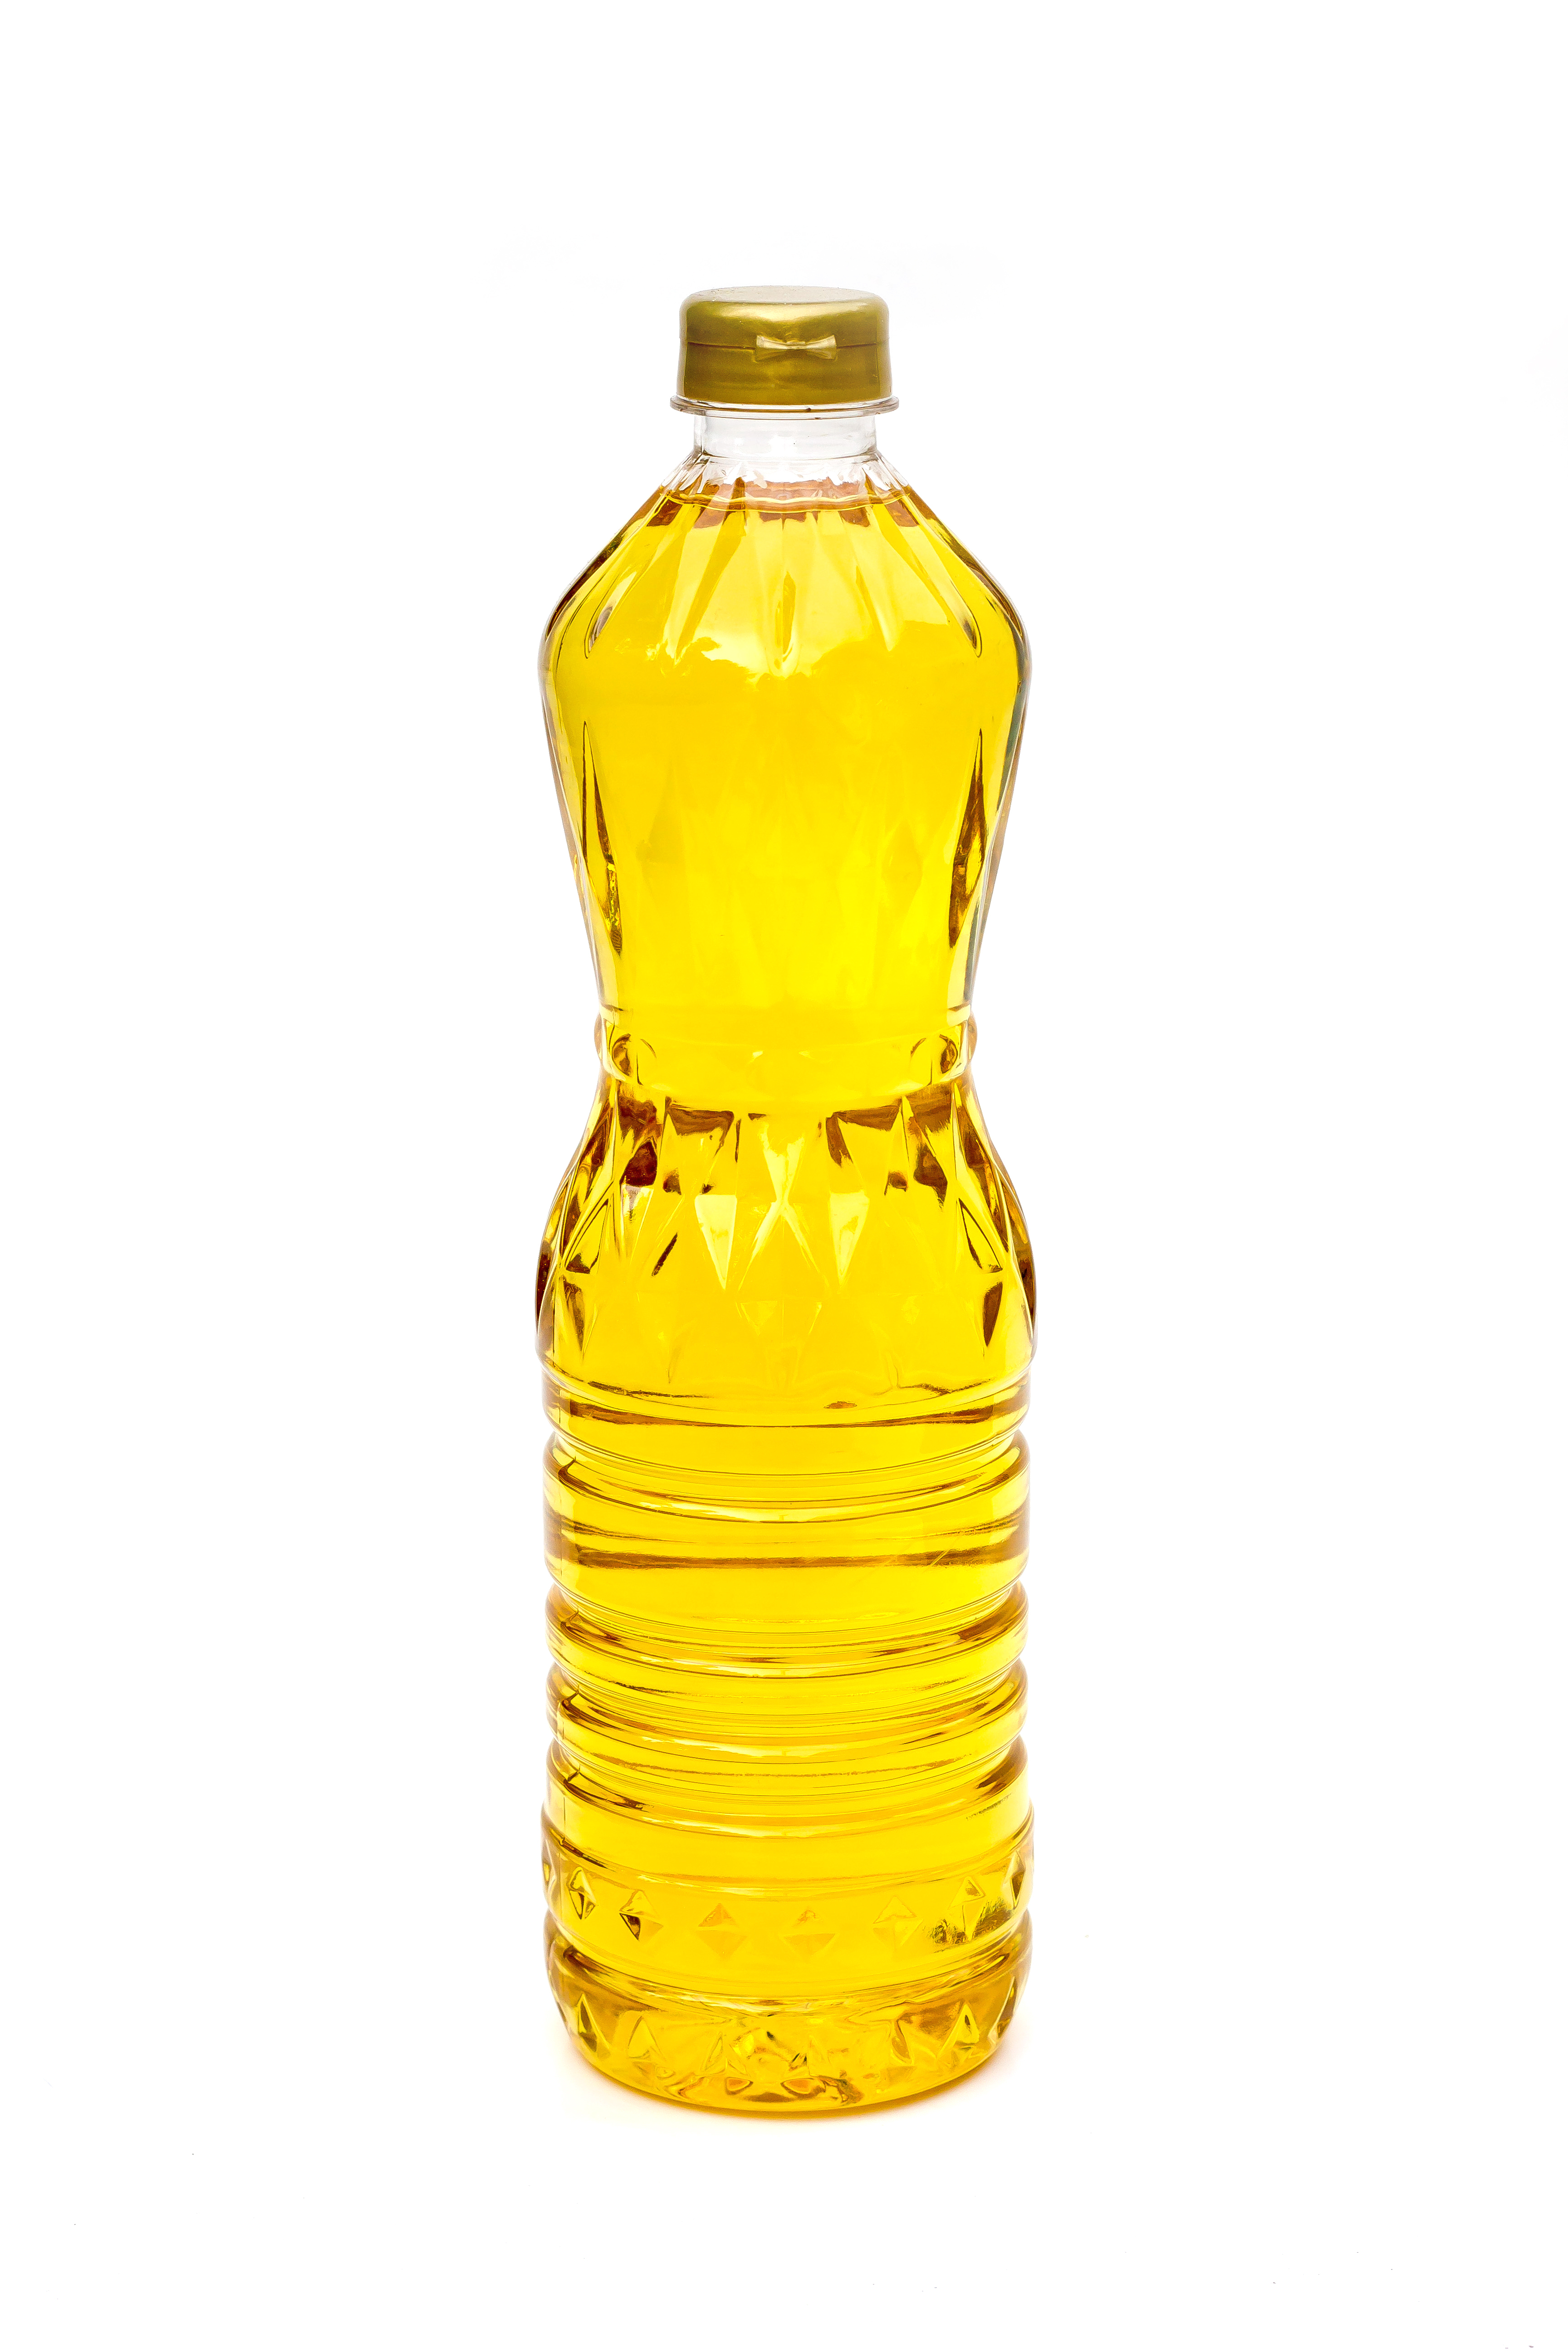 malunggay as an effective cooking oil Malunggay is widely popular to increase breastmilk production for lactating moms okra on the other hand has potassium, vitamin b, vitamin c, folic acid, and calcium, and being cited as beneficial in managing sugar level in the body.